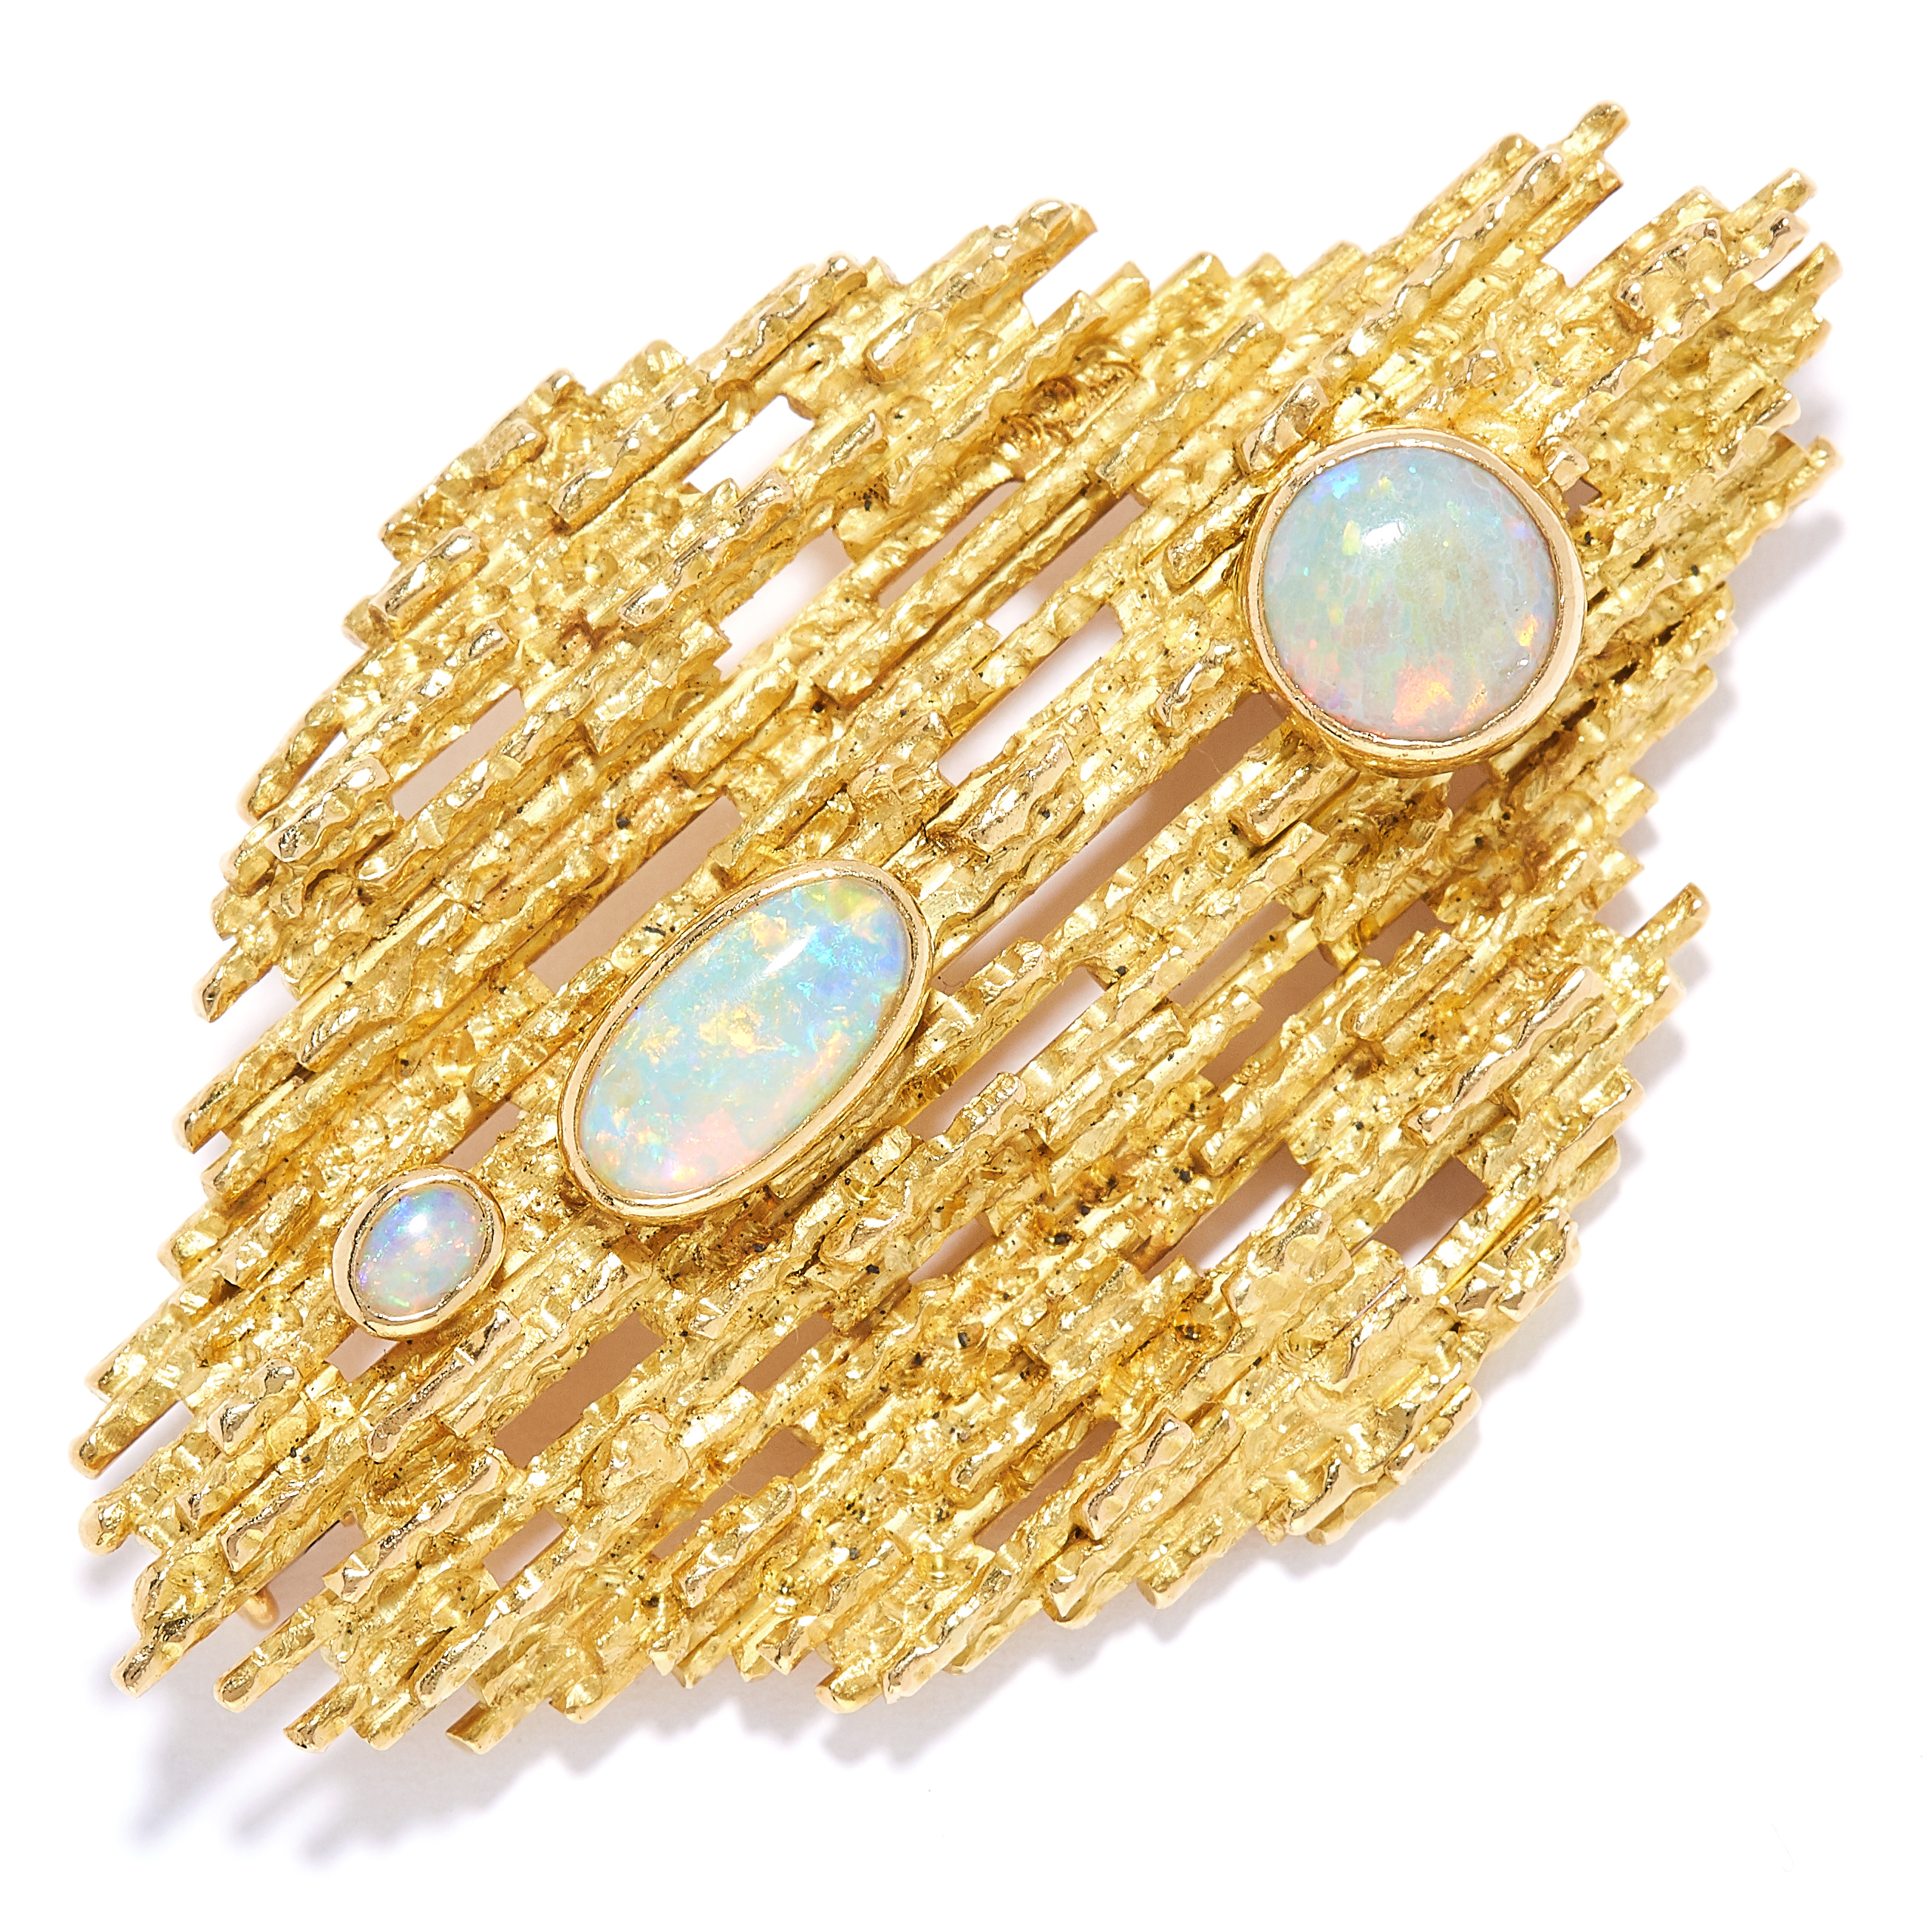 OPAL BROOCH / PENDANT, TIFFANY AND CO, CIRCA 1970 in 18ct yellow gold, in Brutalist style, the